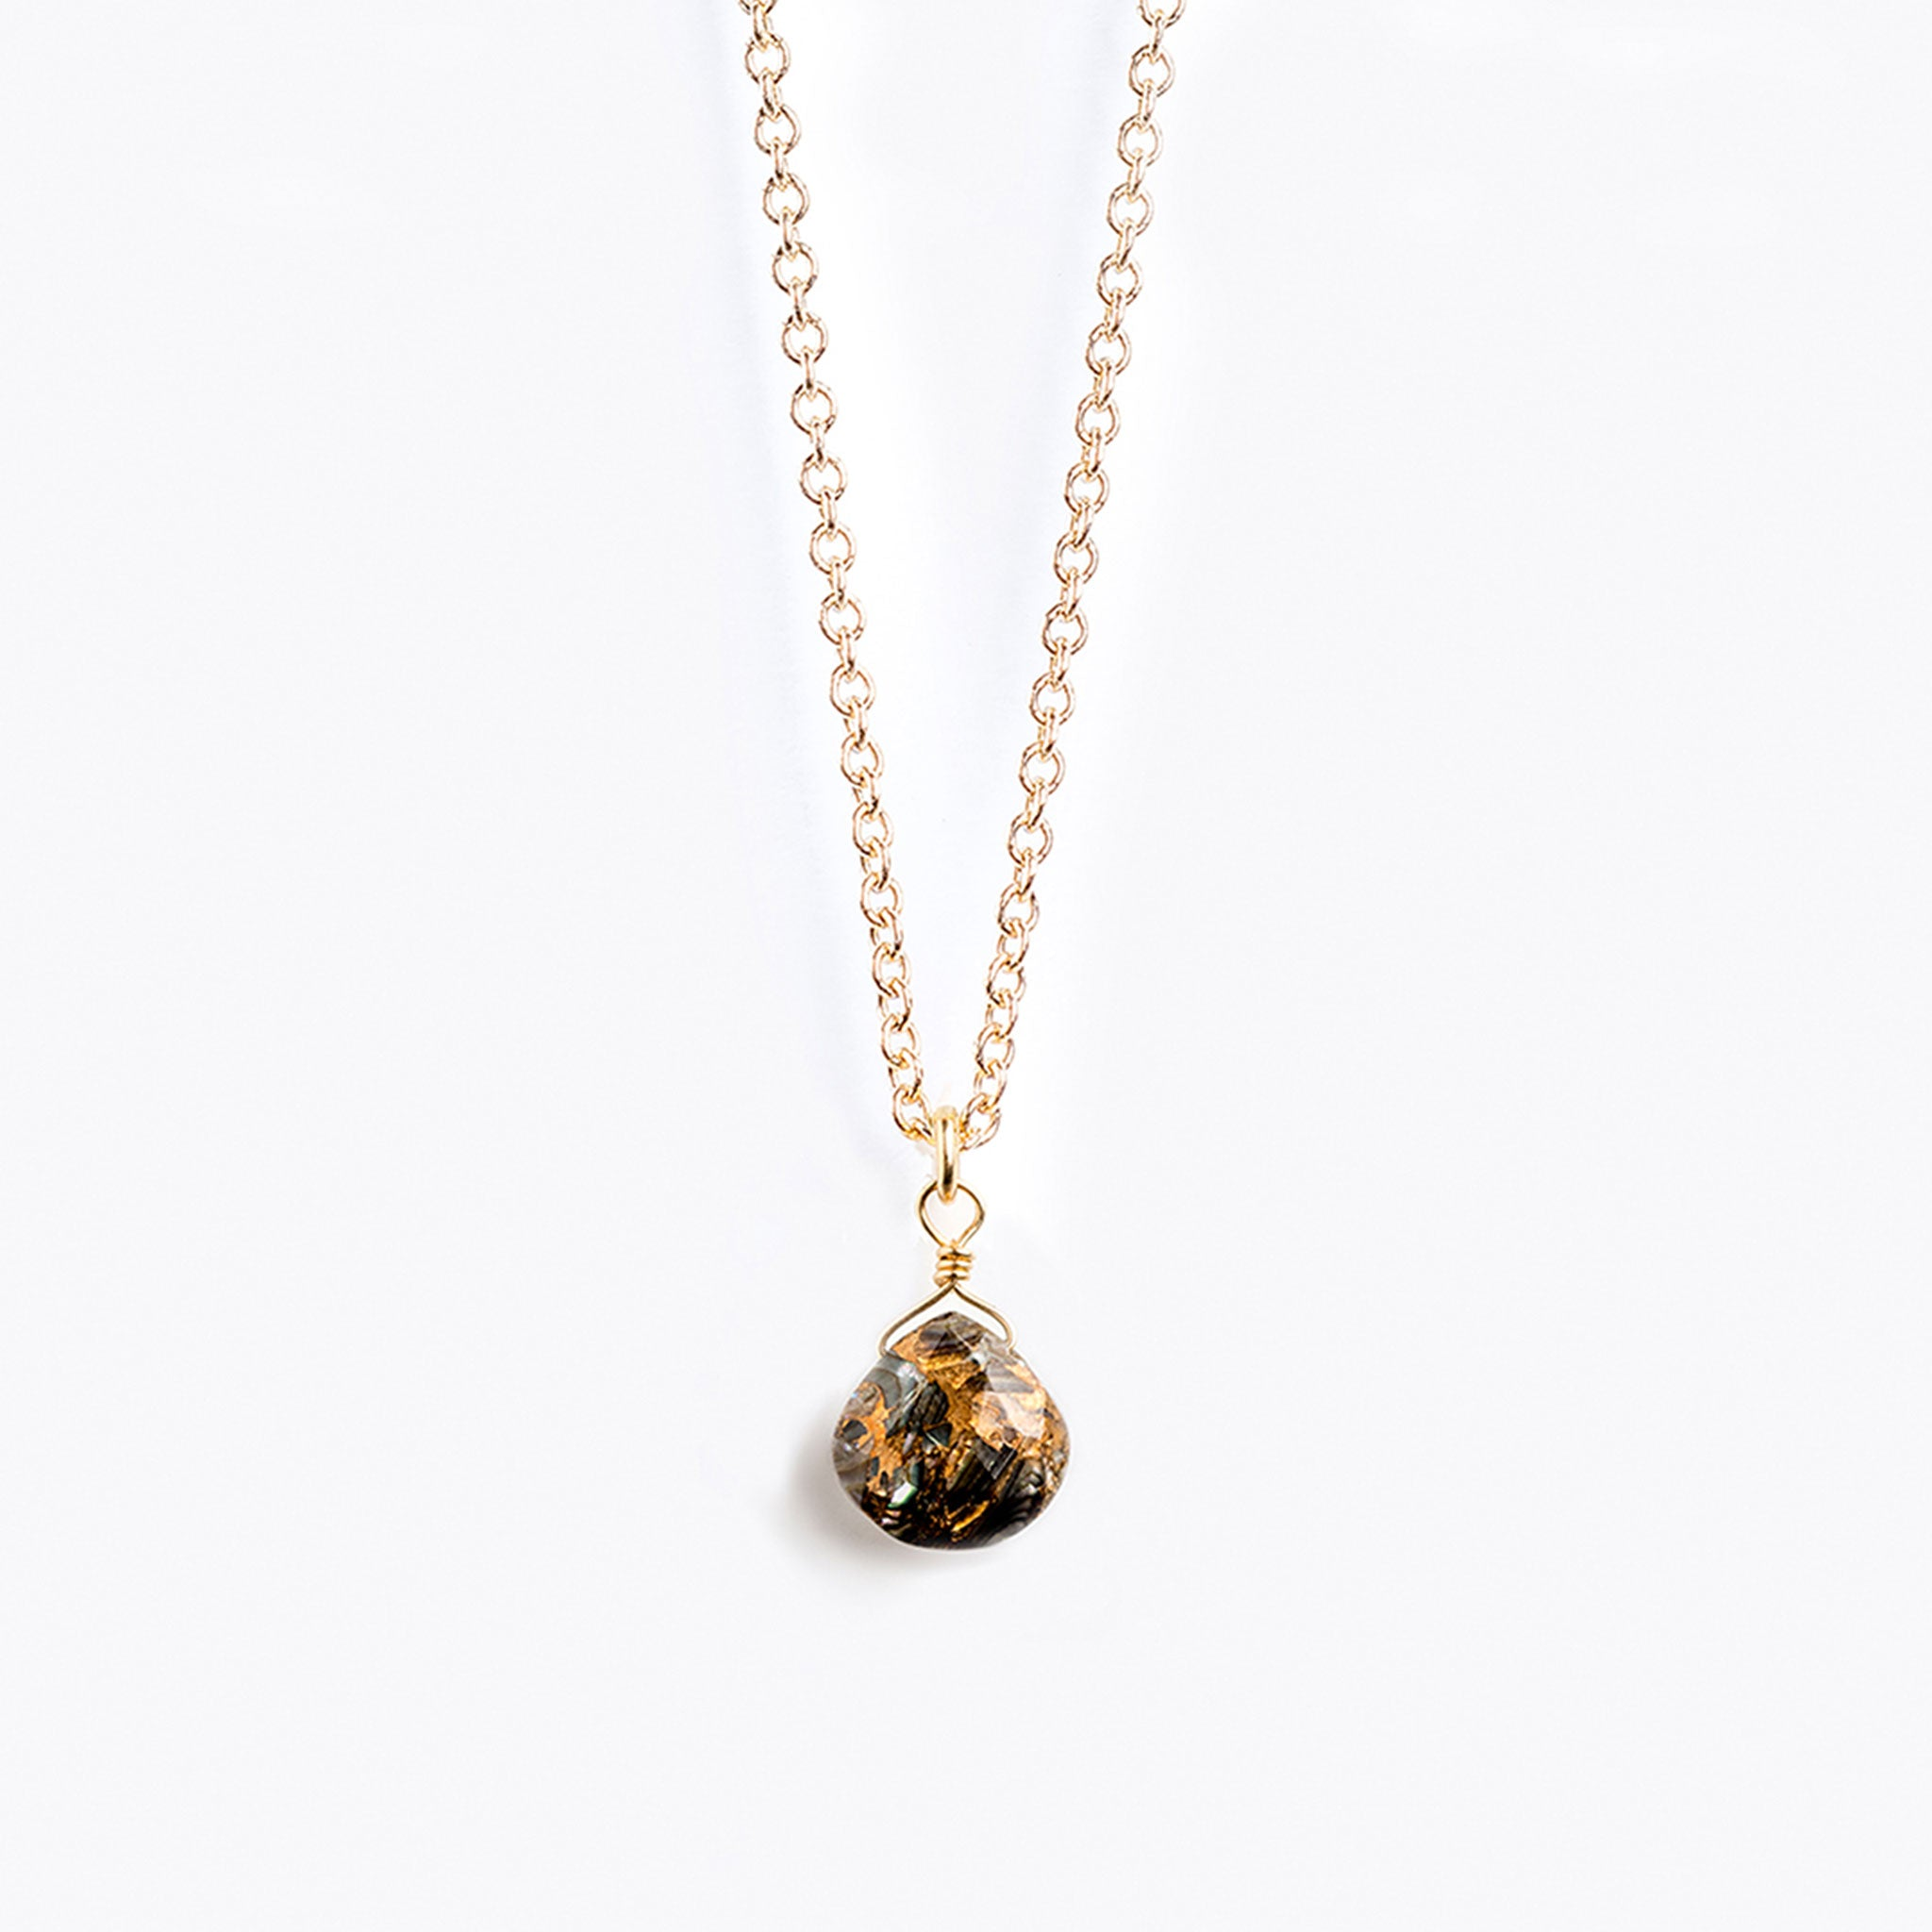 Wanderlust Life paua shell gold chain necklace with adjustable 17